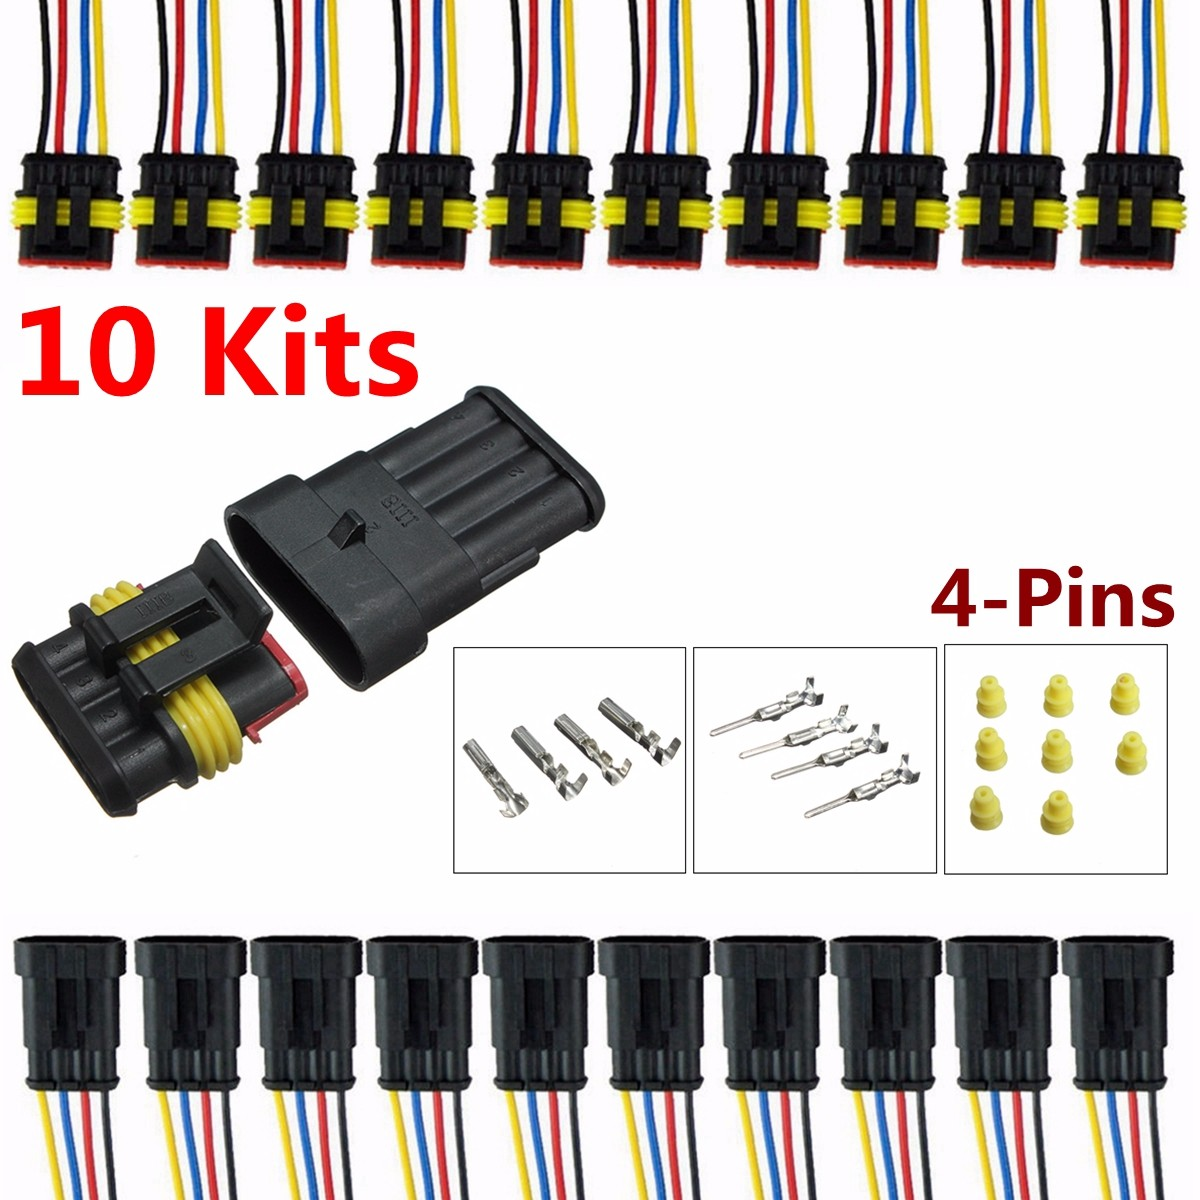 medium resolution of audew 10 kits 4 pin way electrical wire connector plug car auto about 10 kit 4 pin way waterproof electrical wire connector plug